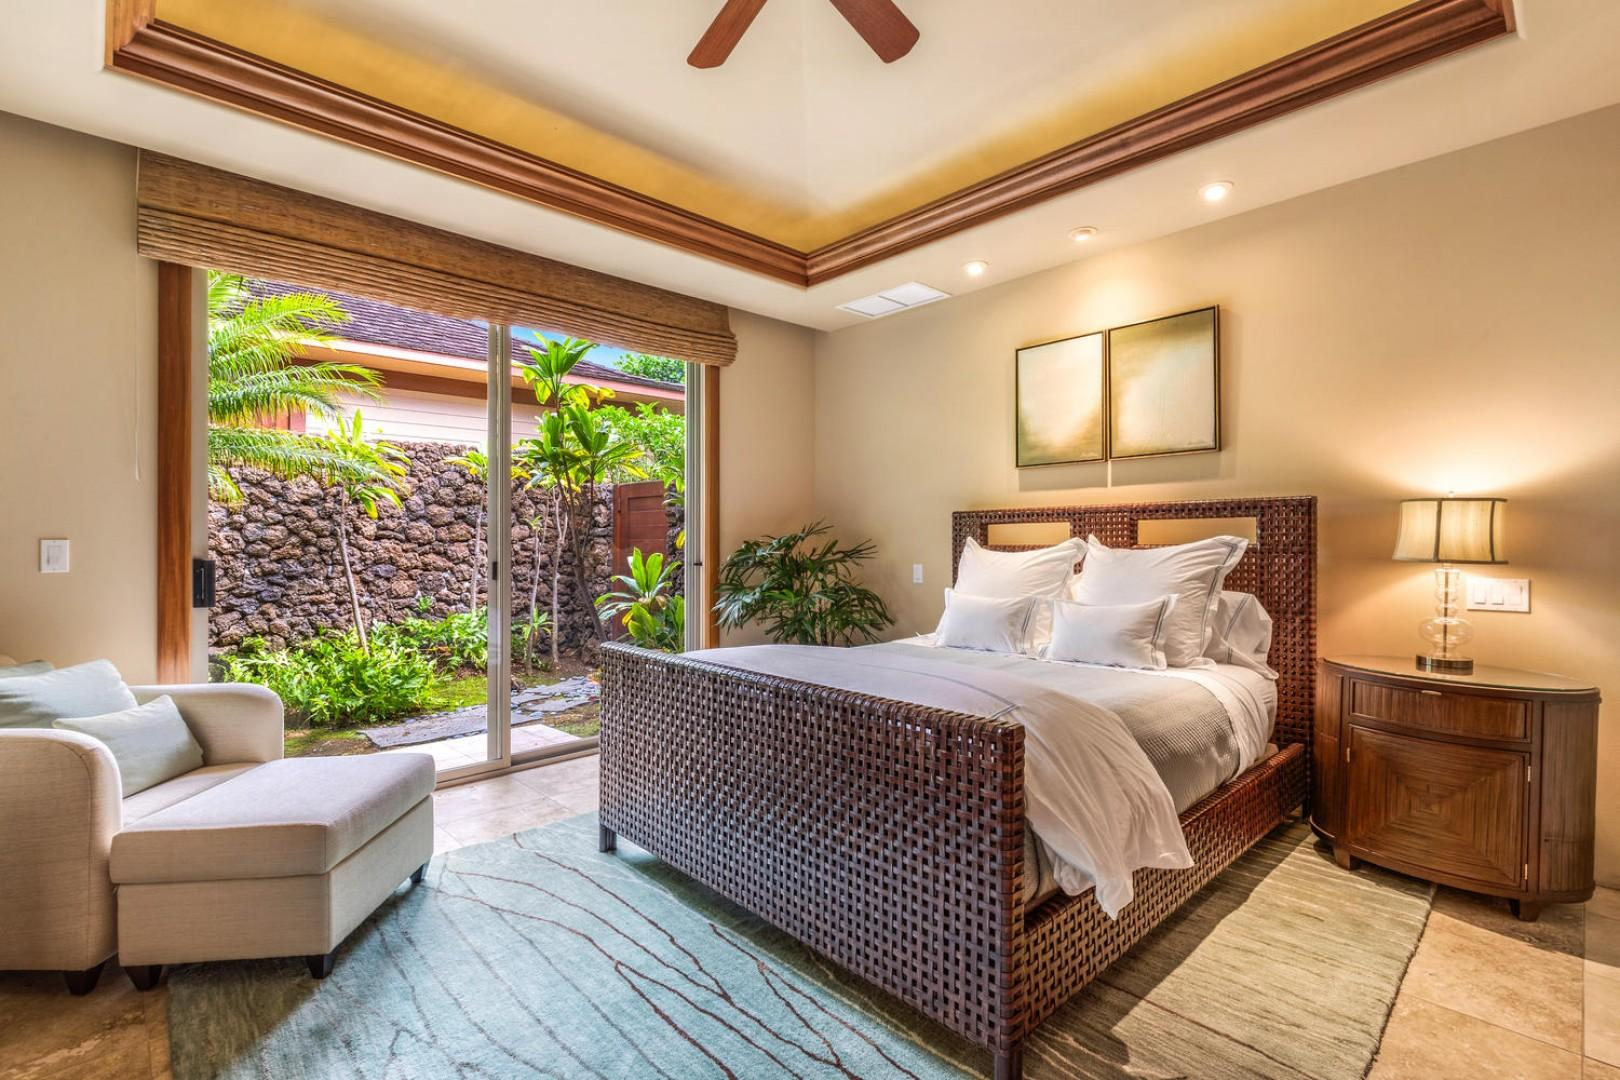 Second guest suite w/private entrance, queen bed, wall mounted flat screen television, sliding doors to outdoor living and en-suite bath.